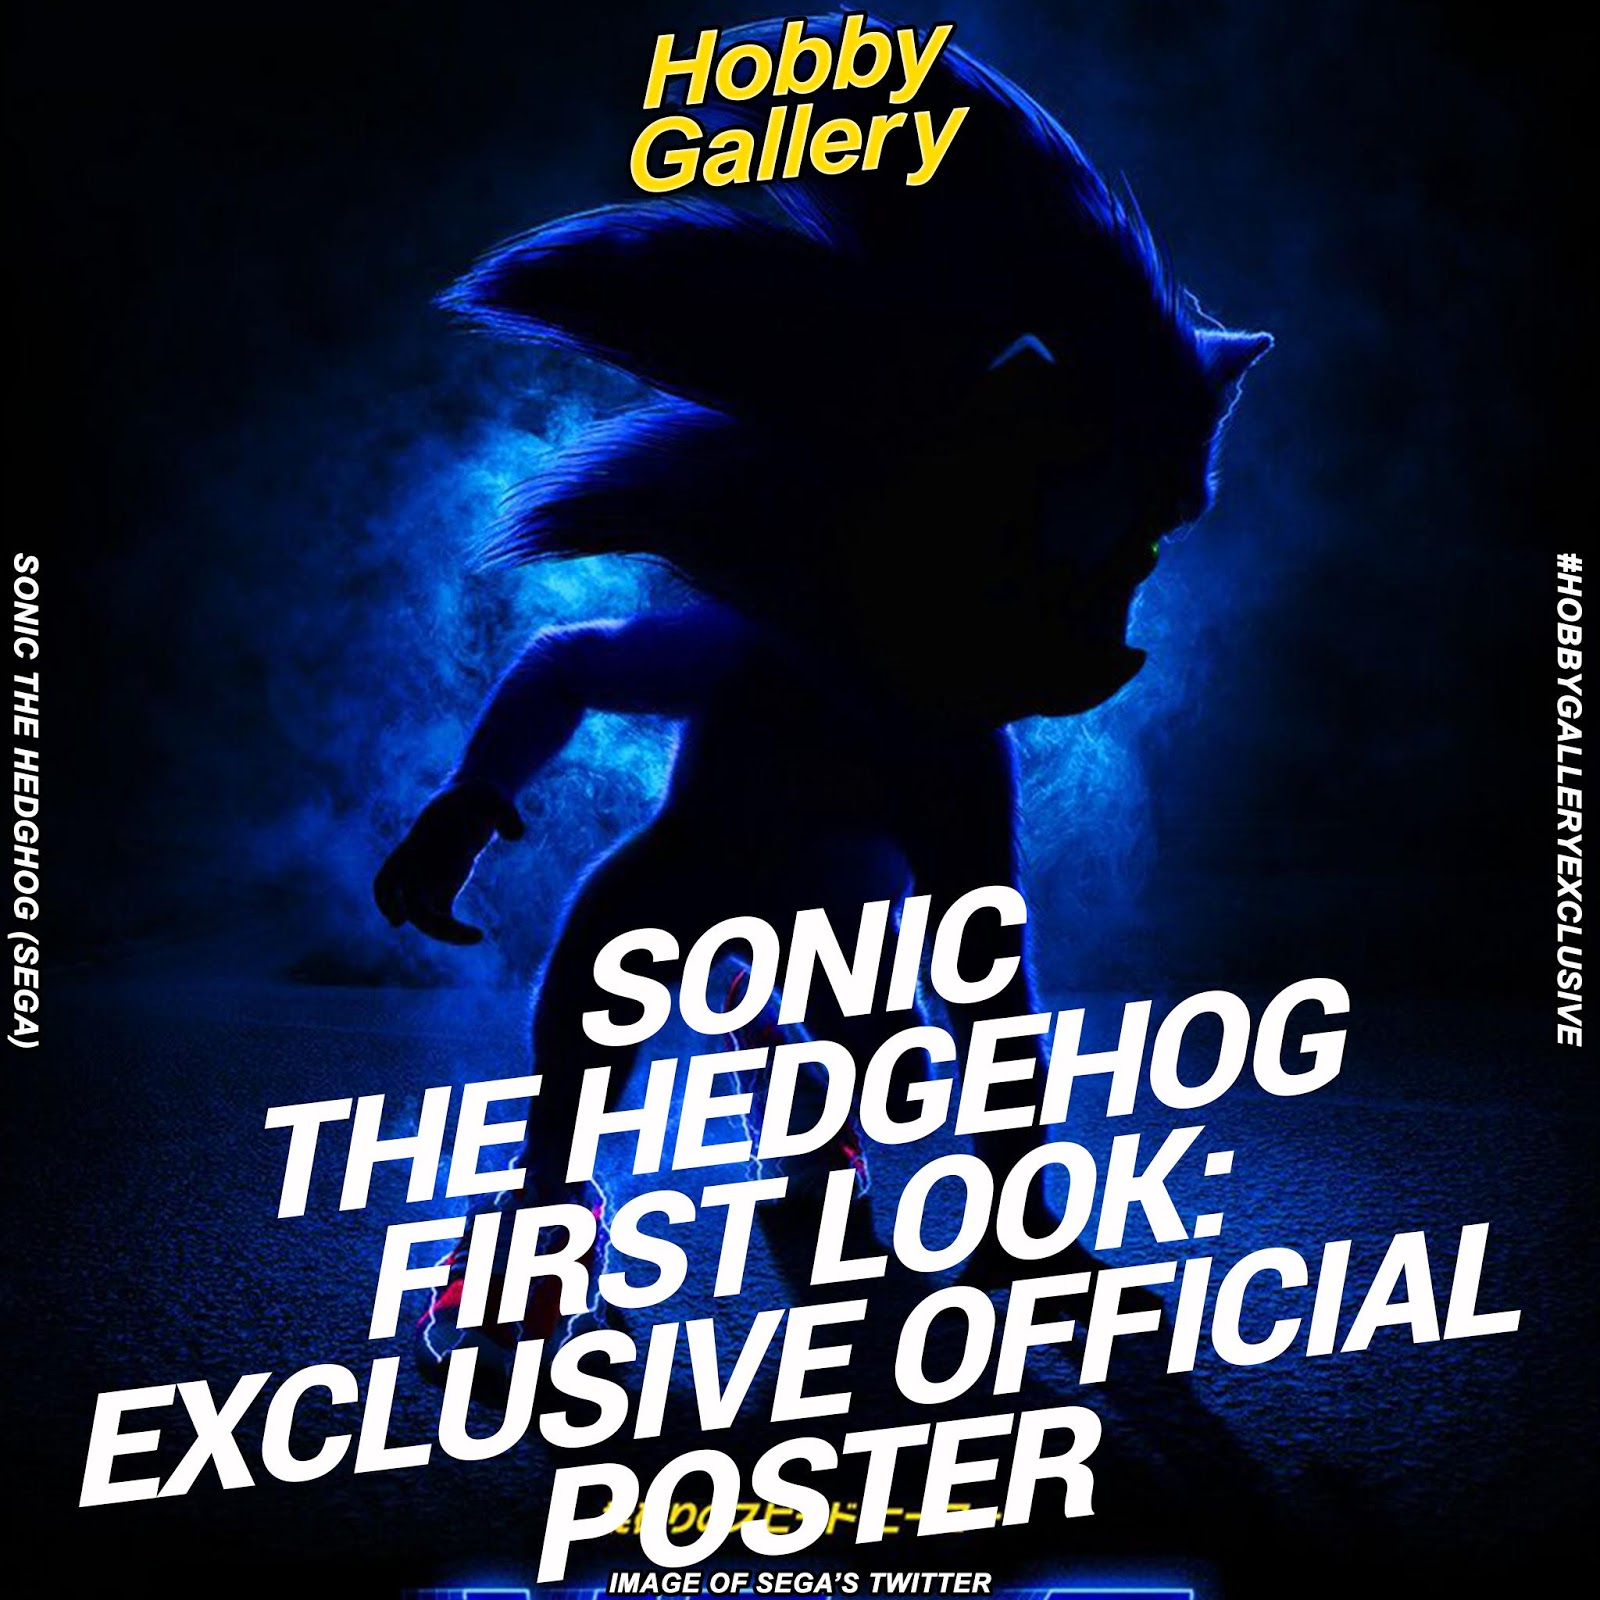 Hobby Gallery Sonic The Hedgehog First Look Exclusive Official Poster